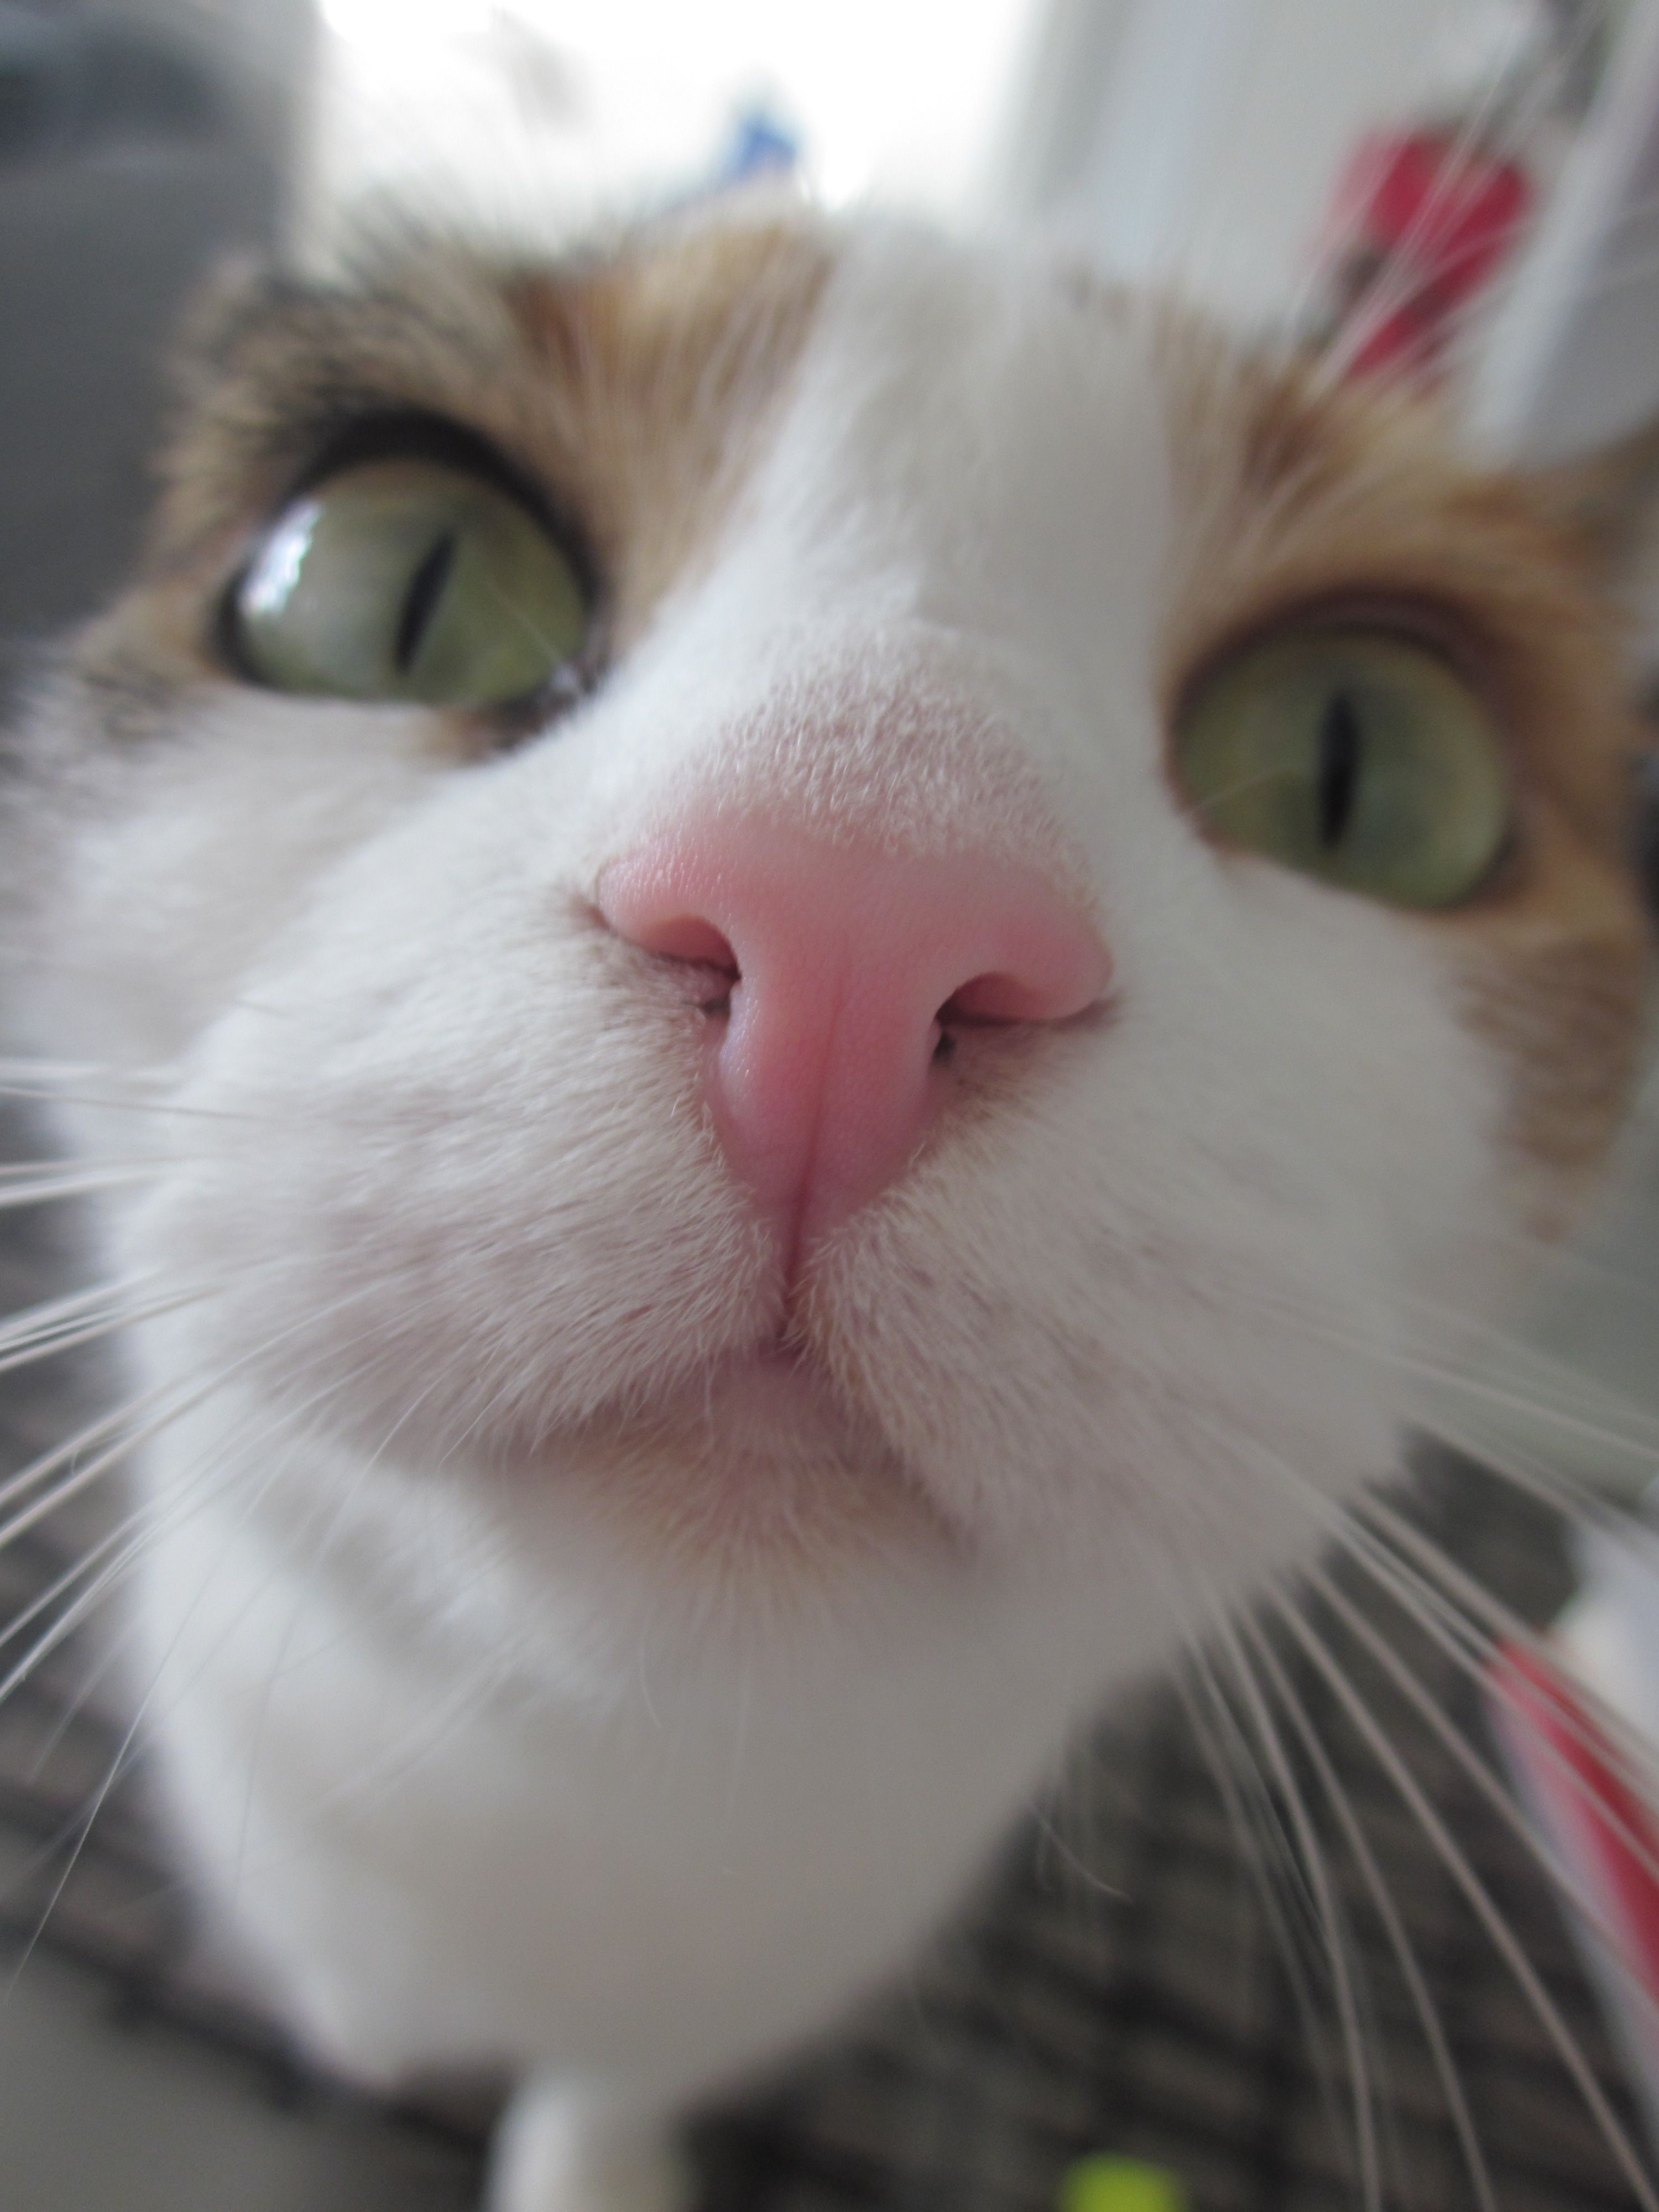 Waking up to the touch of this pink nose, can only start a good day.